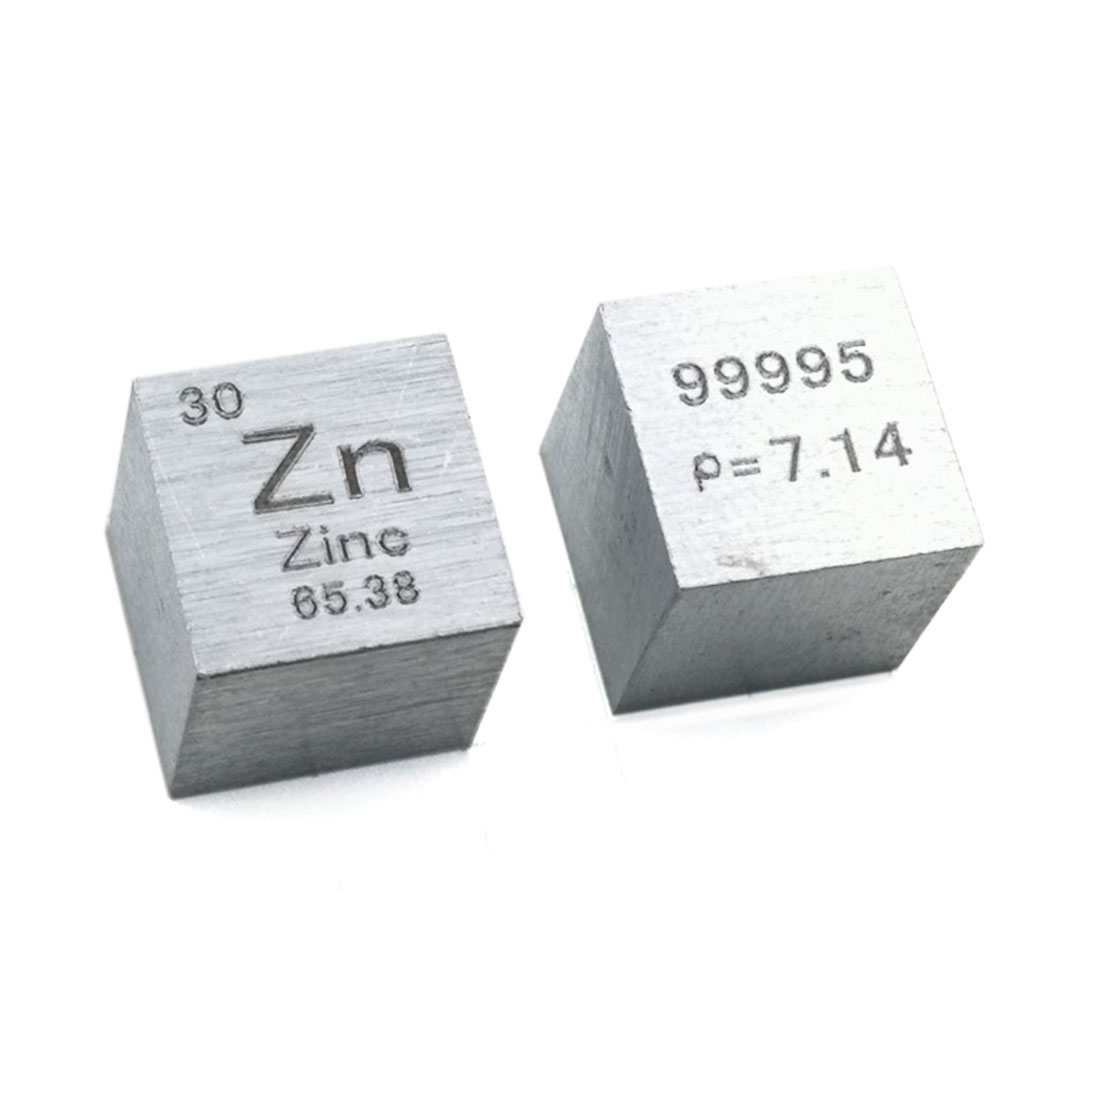 10 X 10 X 10mm Wiredrawing High Purity Zinc Cube Periodic Table Of Element Cube For Research Lab Industrial Collection(Zn≥99.9%)